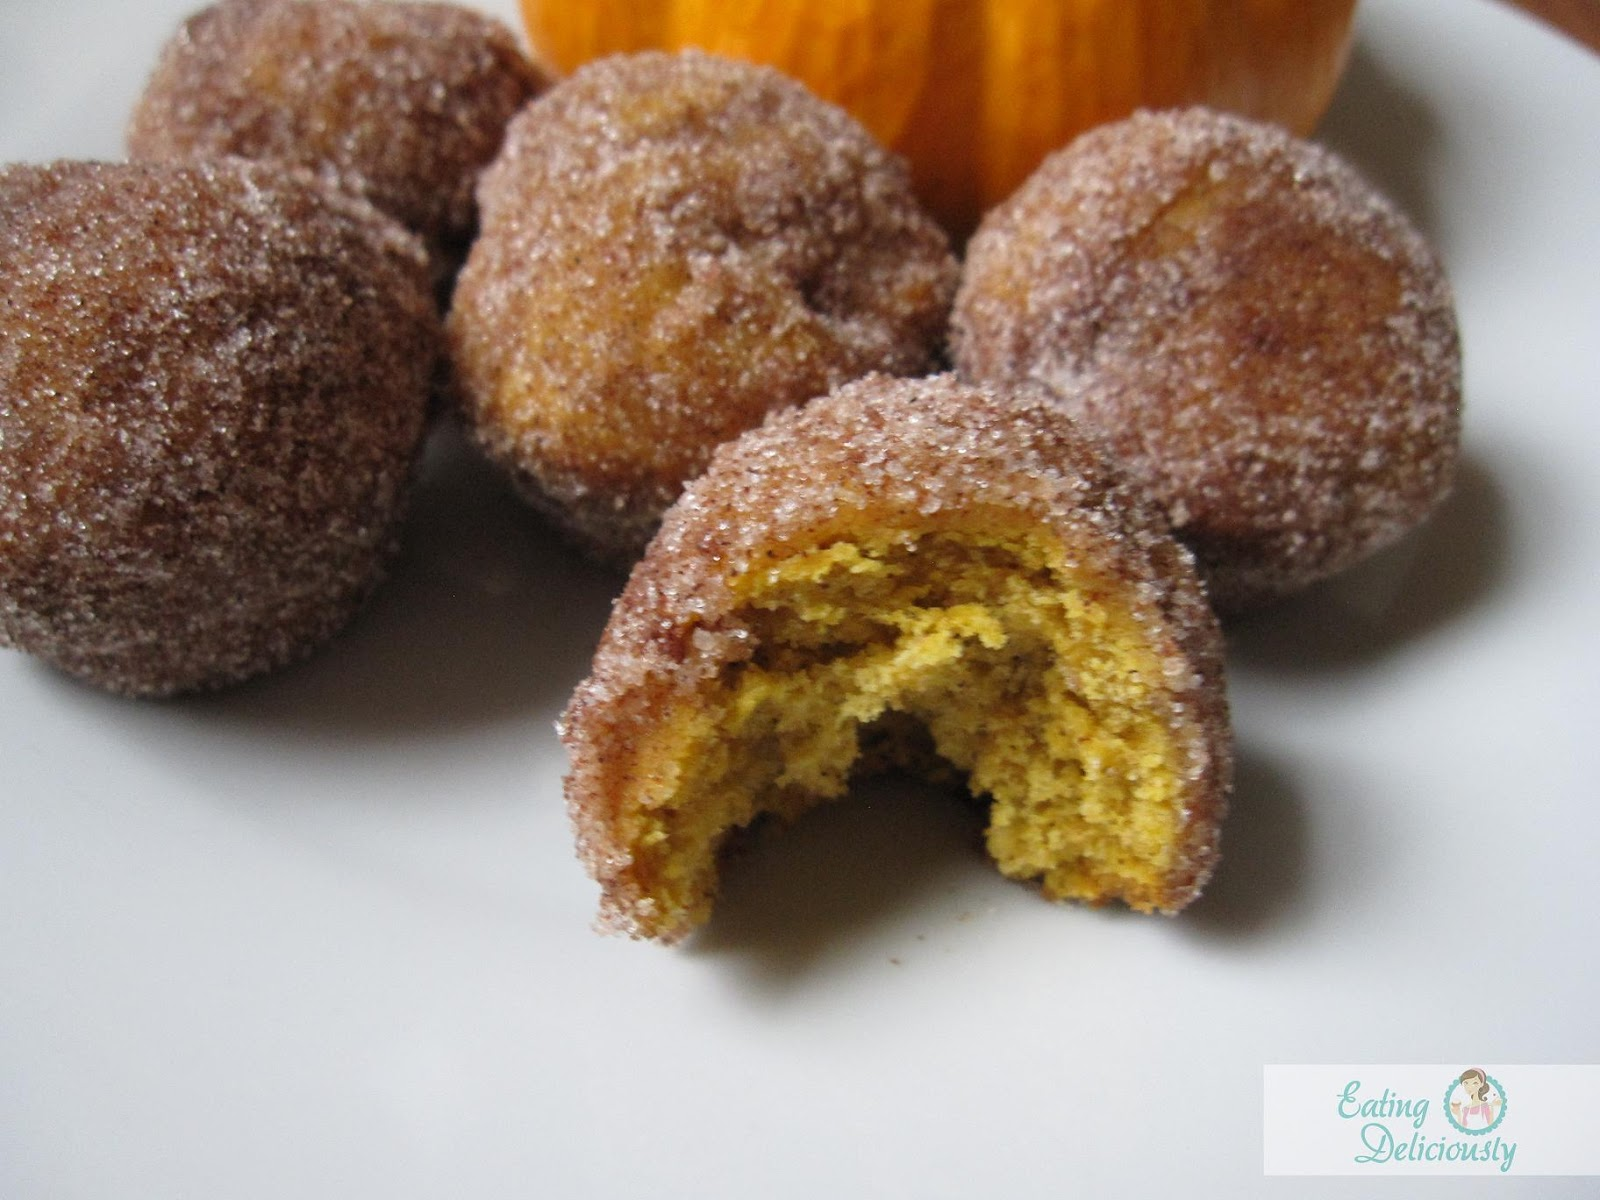 Eating Deliciously: Mini Pumpkin Doughnut Muffins